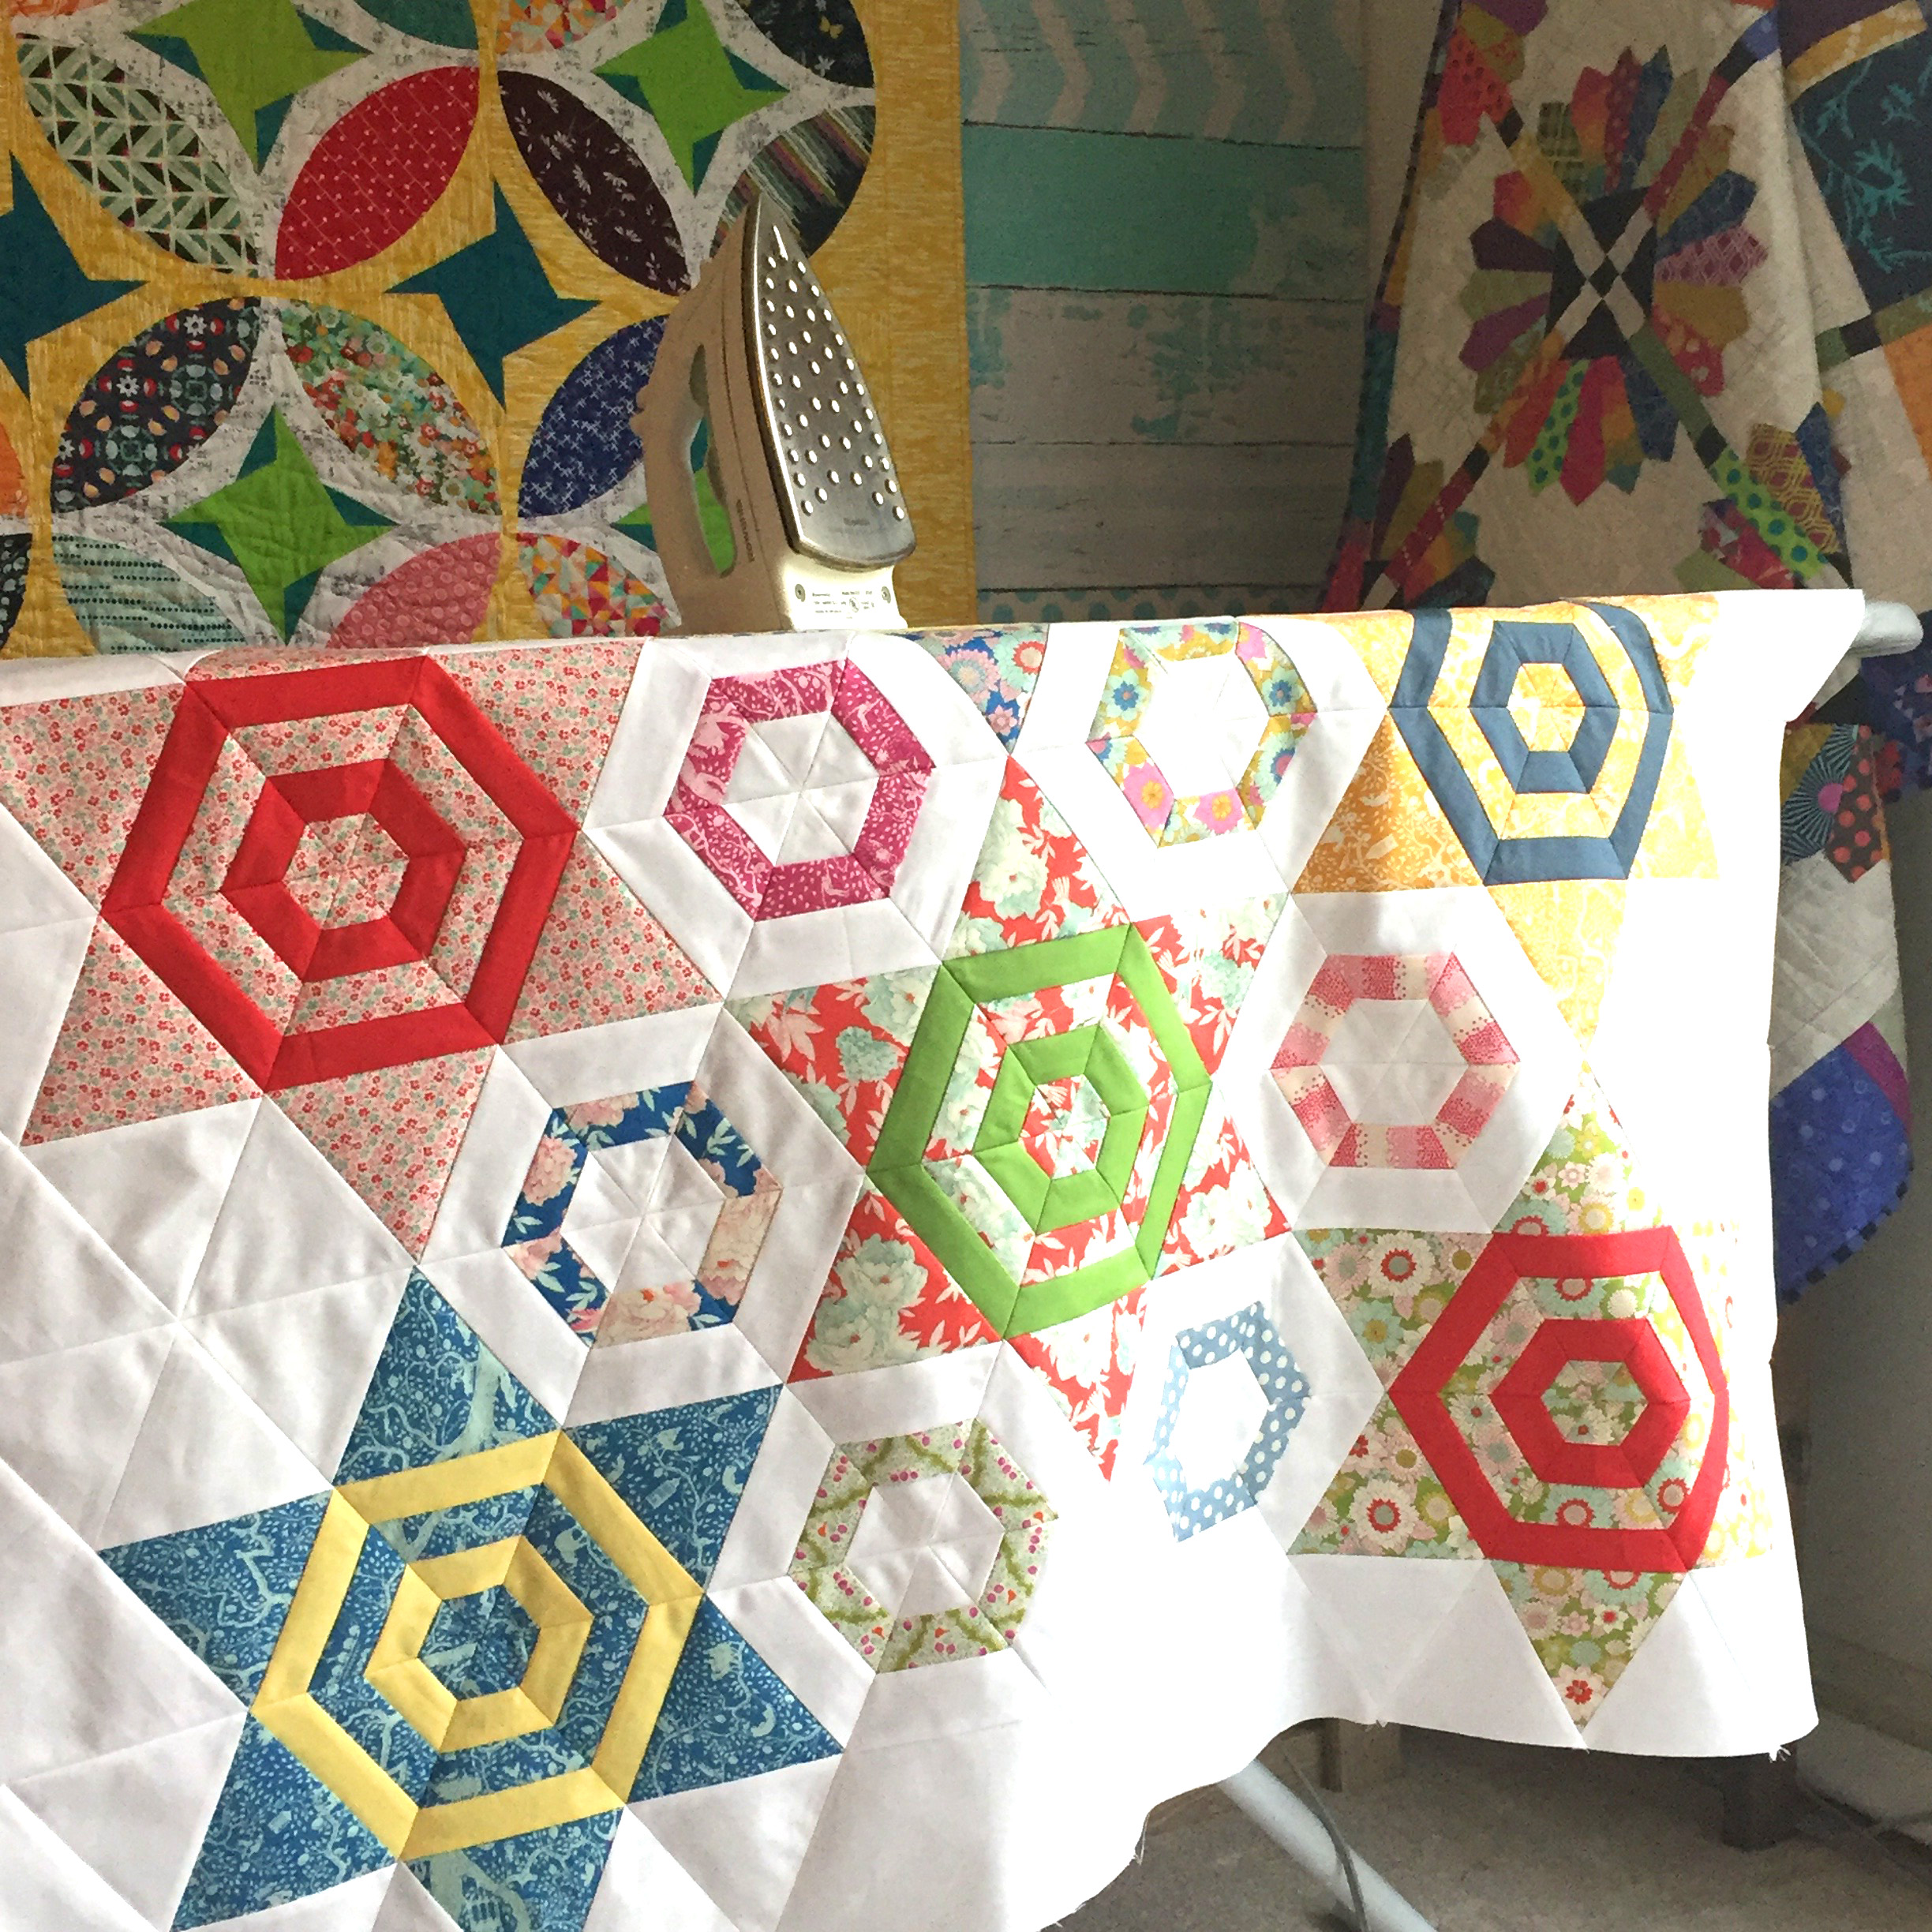 Aurora Quilt pattern by Color Girl, made with Tilda Lemon Tree fabrics